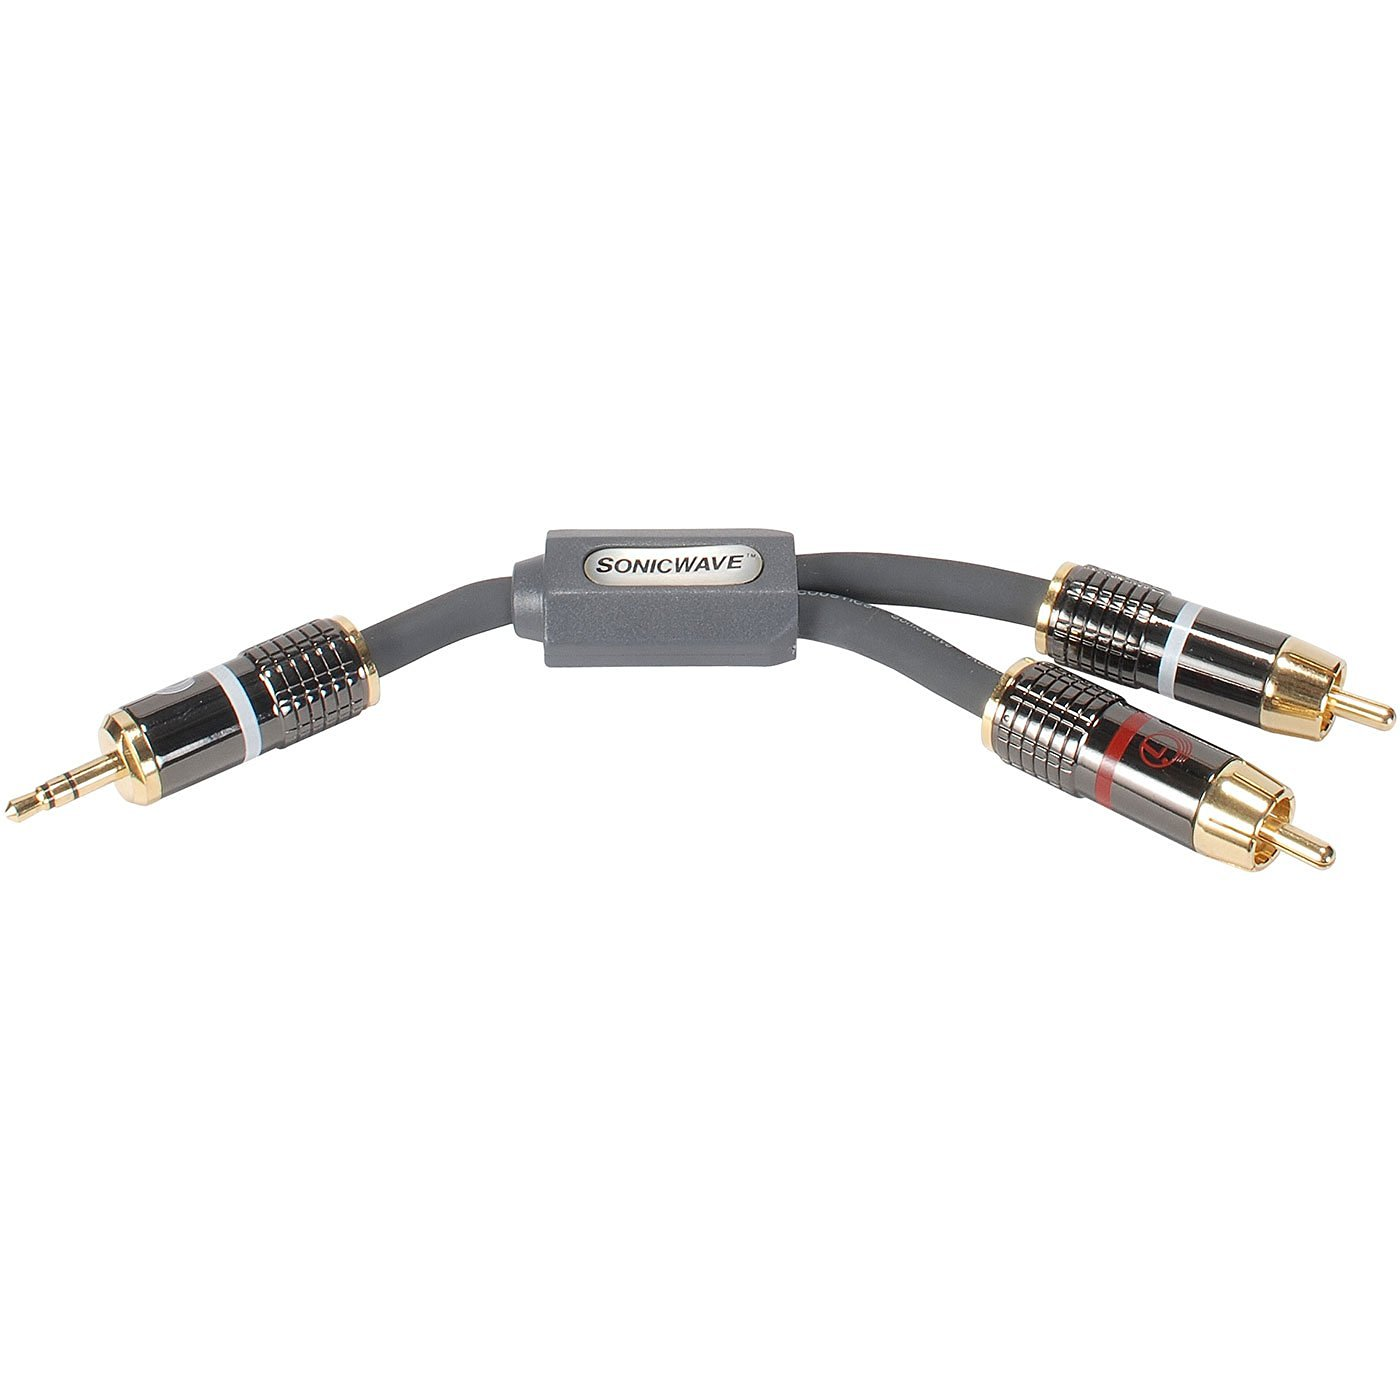 NEW - SONICWAVE(R) ONE 3.5MM STEREO MALE TO TWO RCA STEREO MALE AUDIO Y-CABLE - 29739